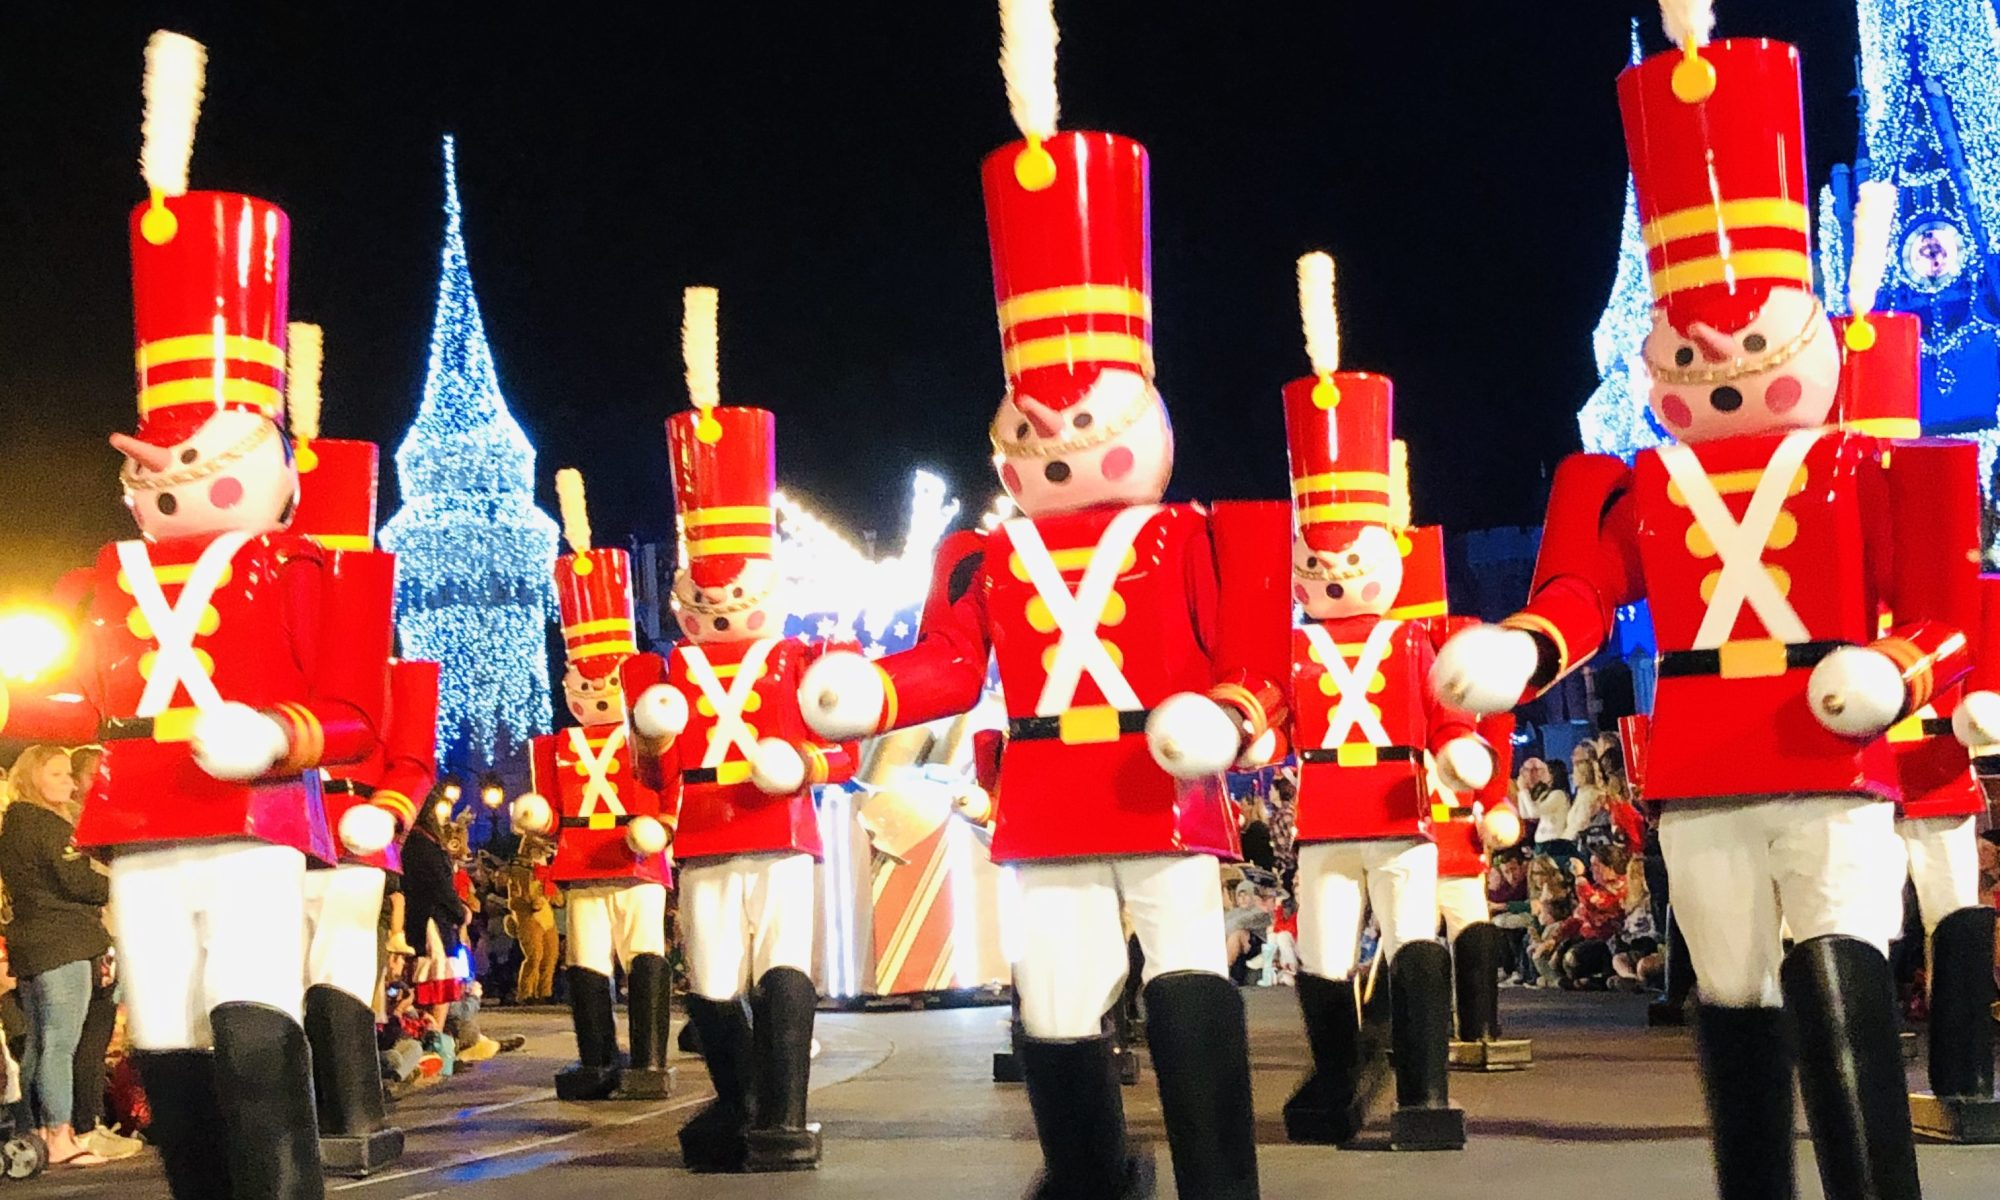 Photo of Toy Soldiers from Mickeys Once Upon a Christmastime Parade at Mickeys Very Merry Christmas Party